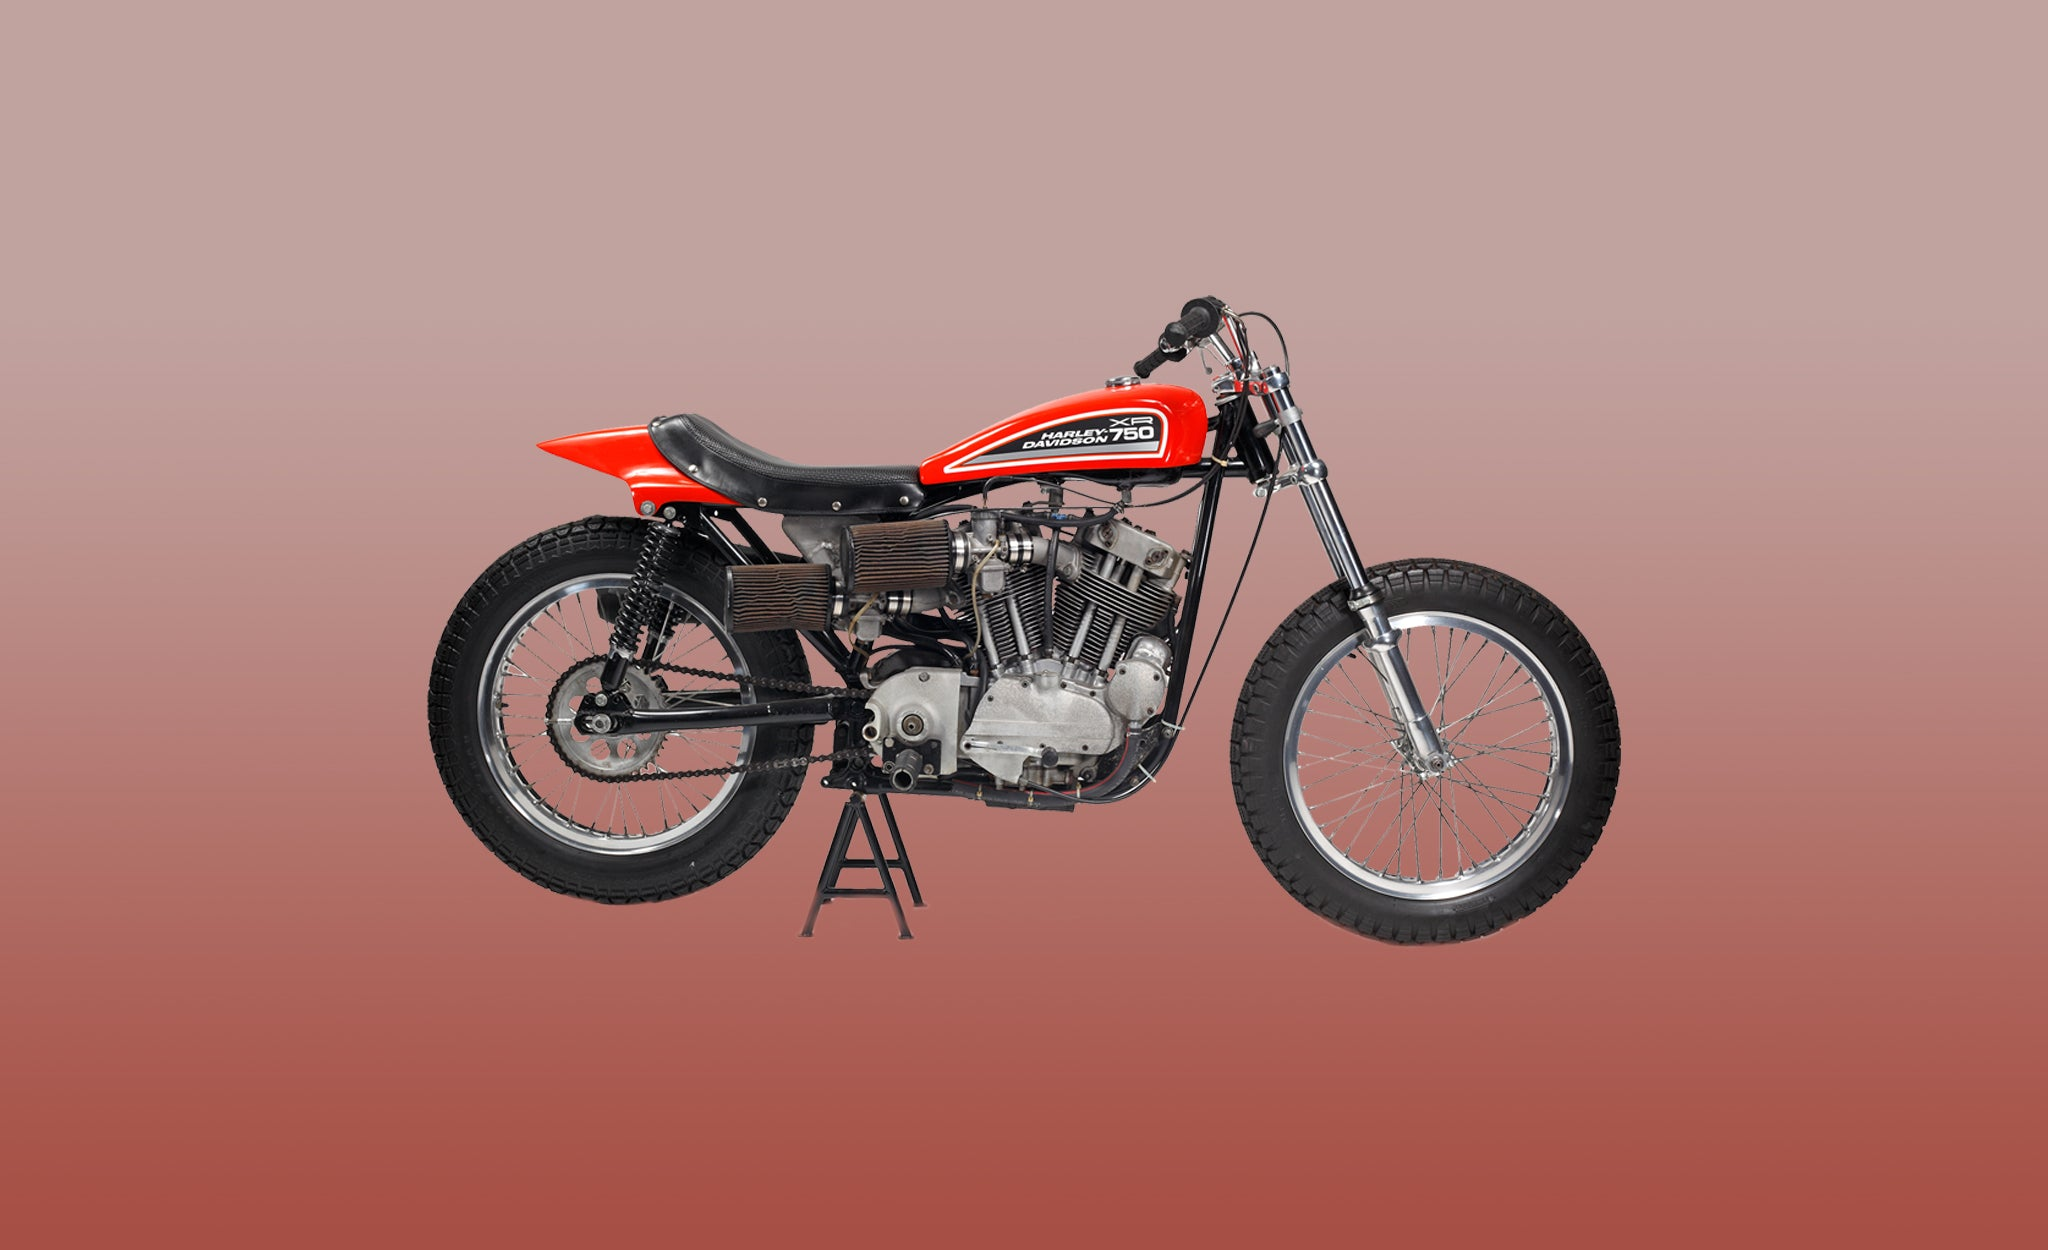 Harley Davidson XR750 motorbike in red